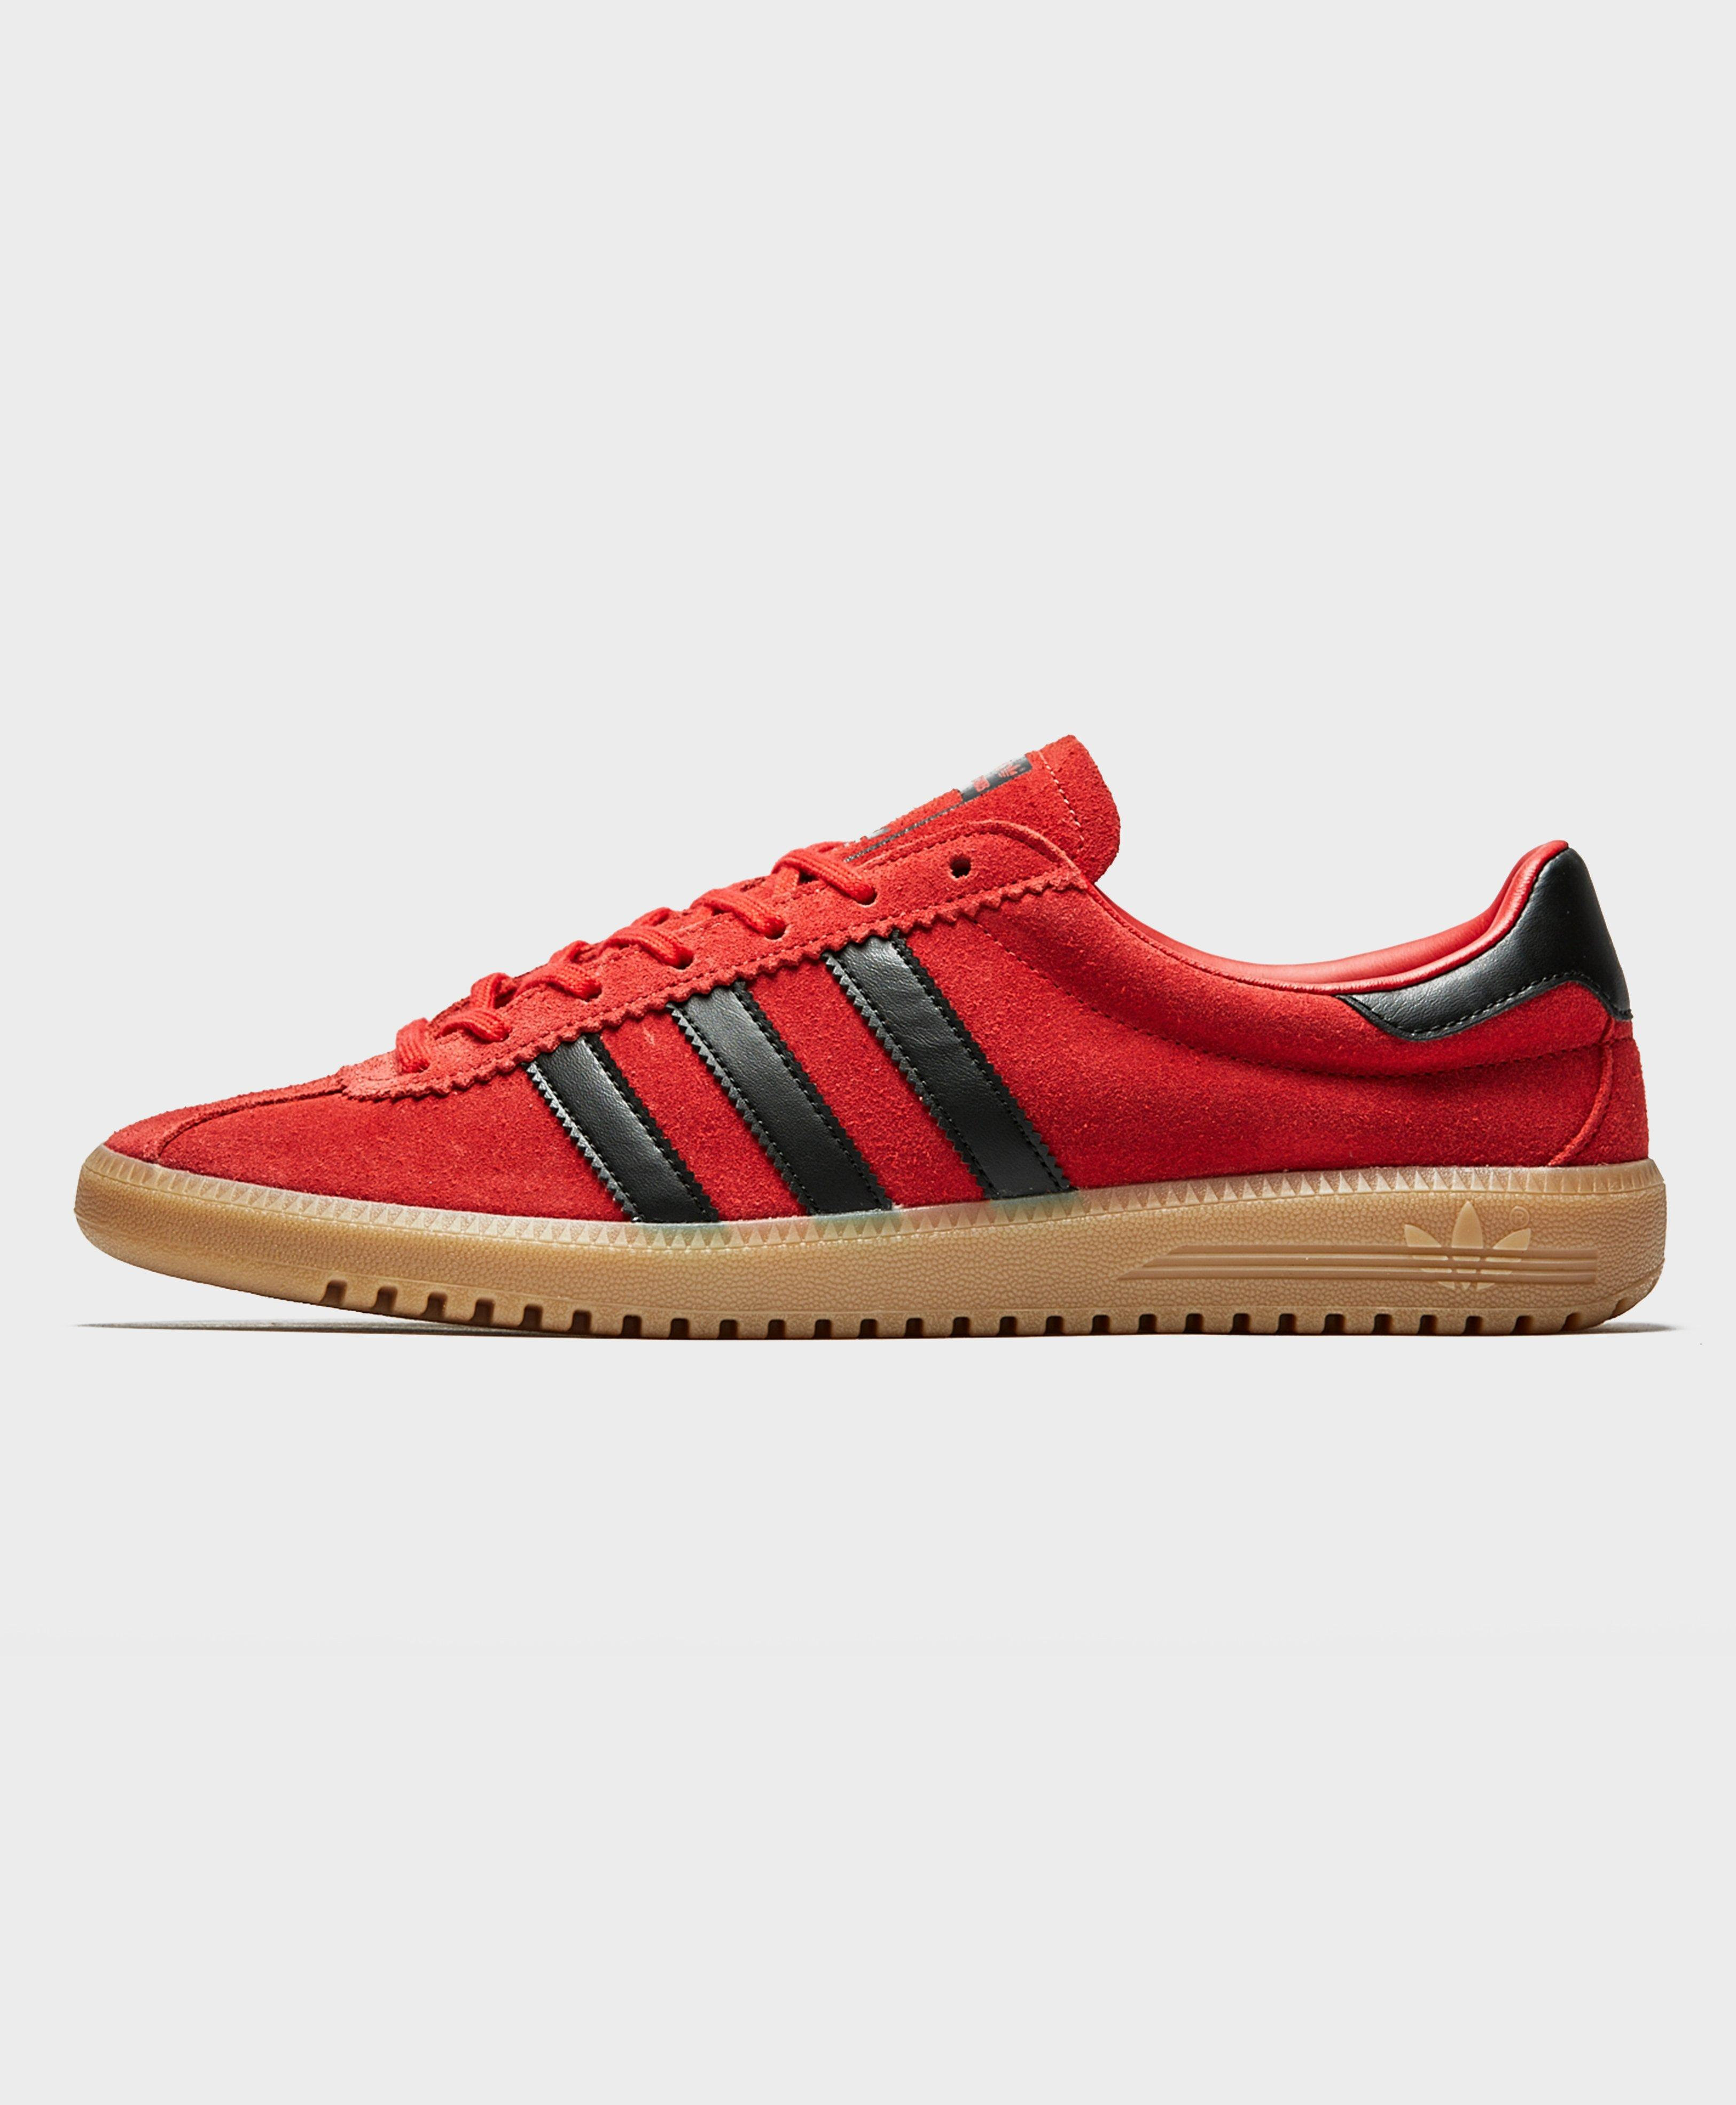 low priced 73e23 3a083 adidas Originals Bermuda Scarlet Red  Black Trainers in Red